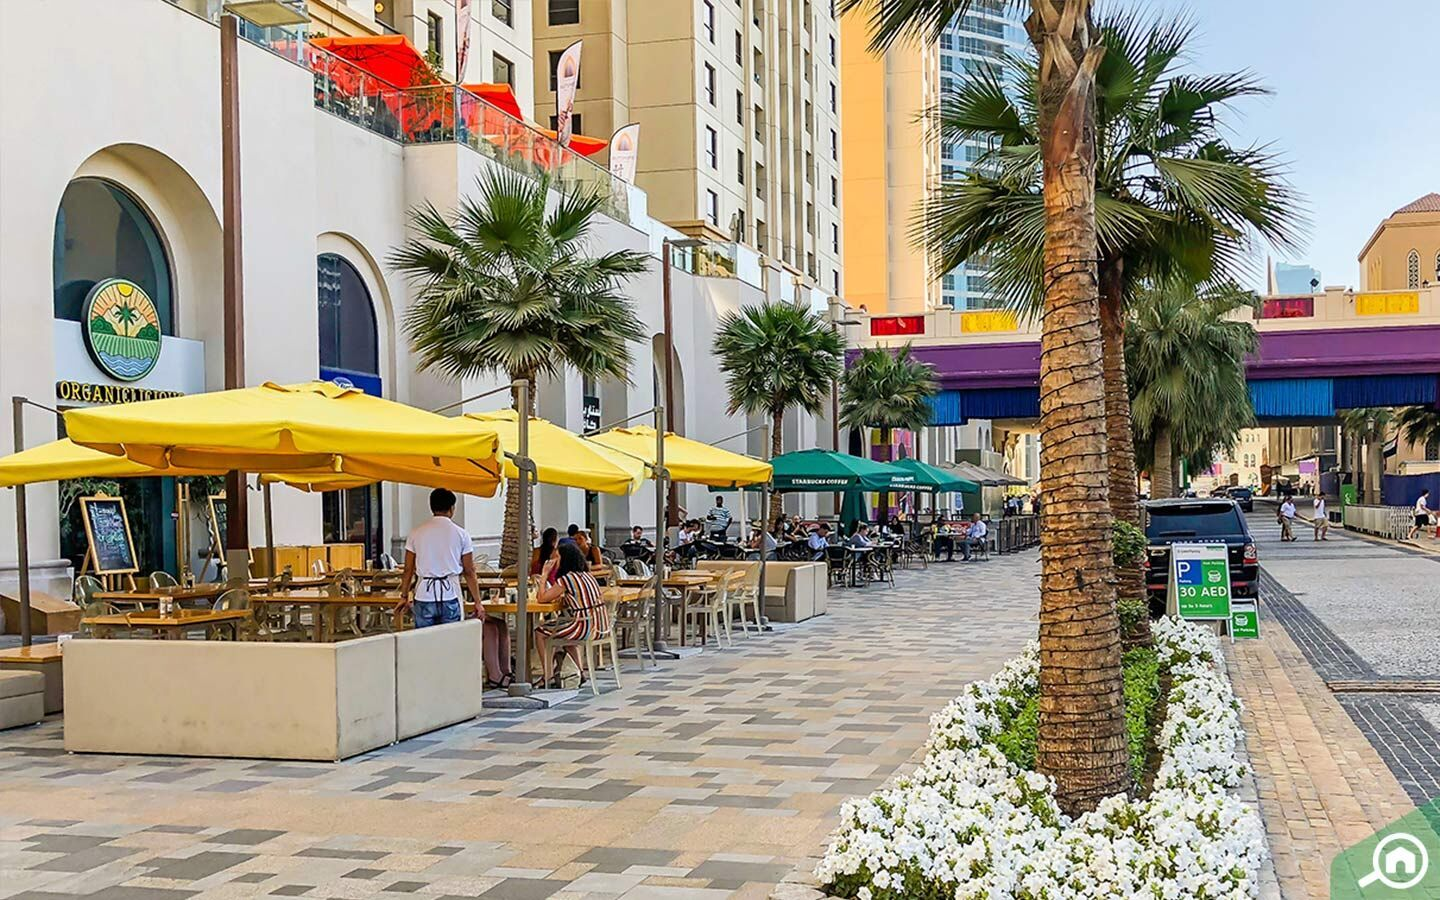 Places to visit in JBR